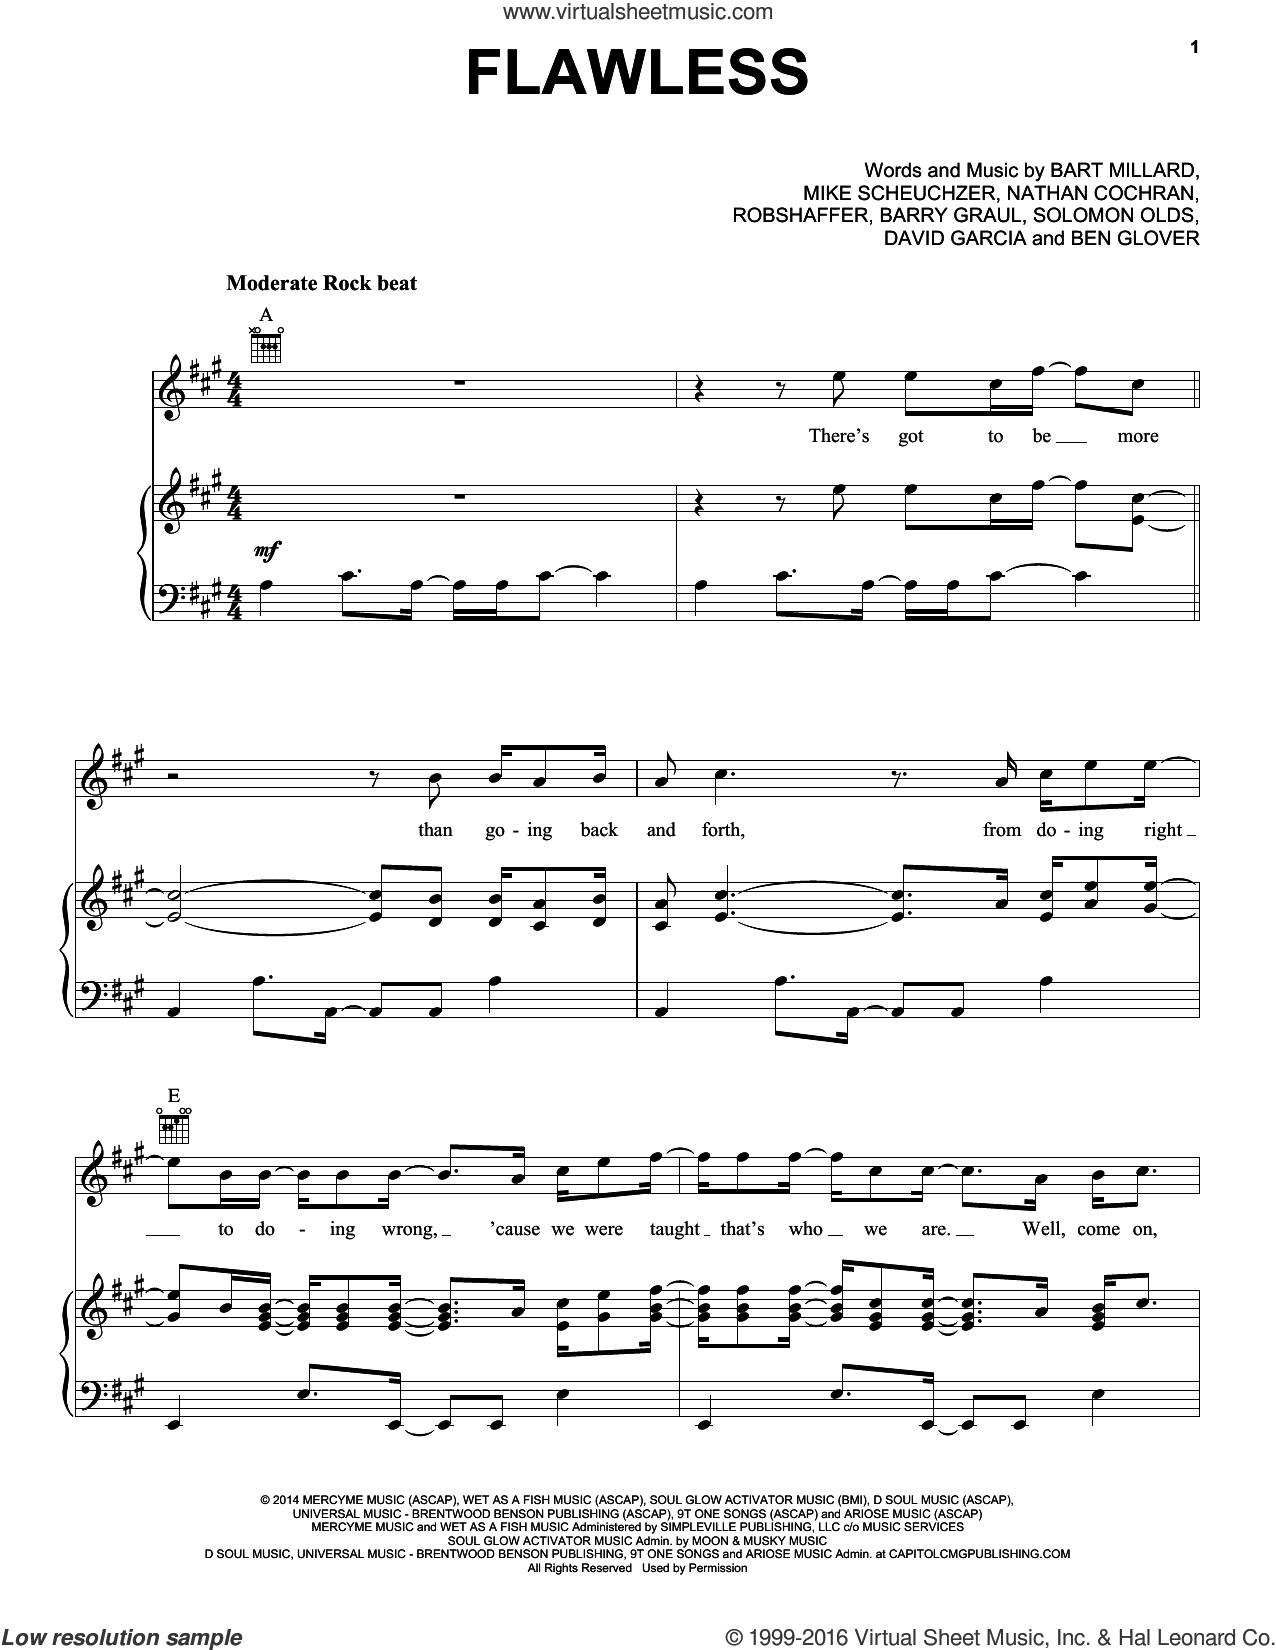 Flawless sheet music for voice, piano or guitar by MercyMe, Barry Graul, Bart Millard, Ben Glover, David Garcia, Mike Scheuchzer, Nathan Cochran, Robshaffer and Solomon Olds, intermediate